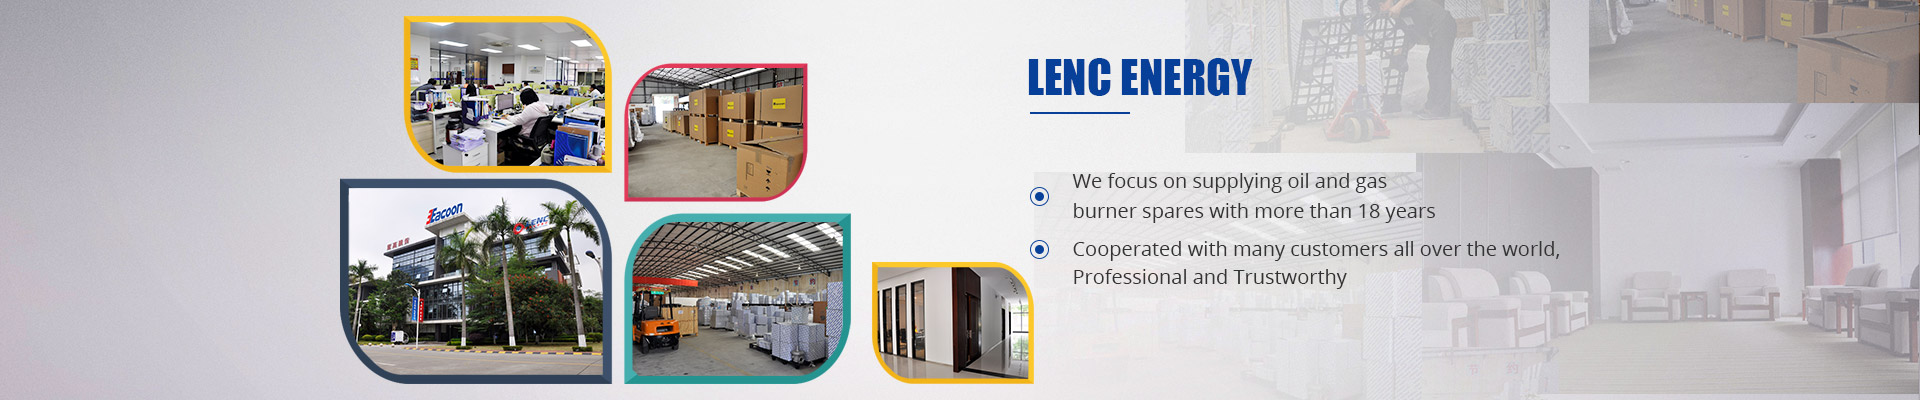 Guangzhou Liancheng Energy Technology Development Co., Ltd.